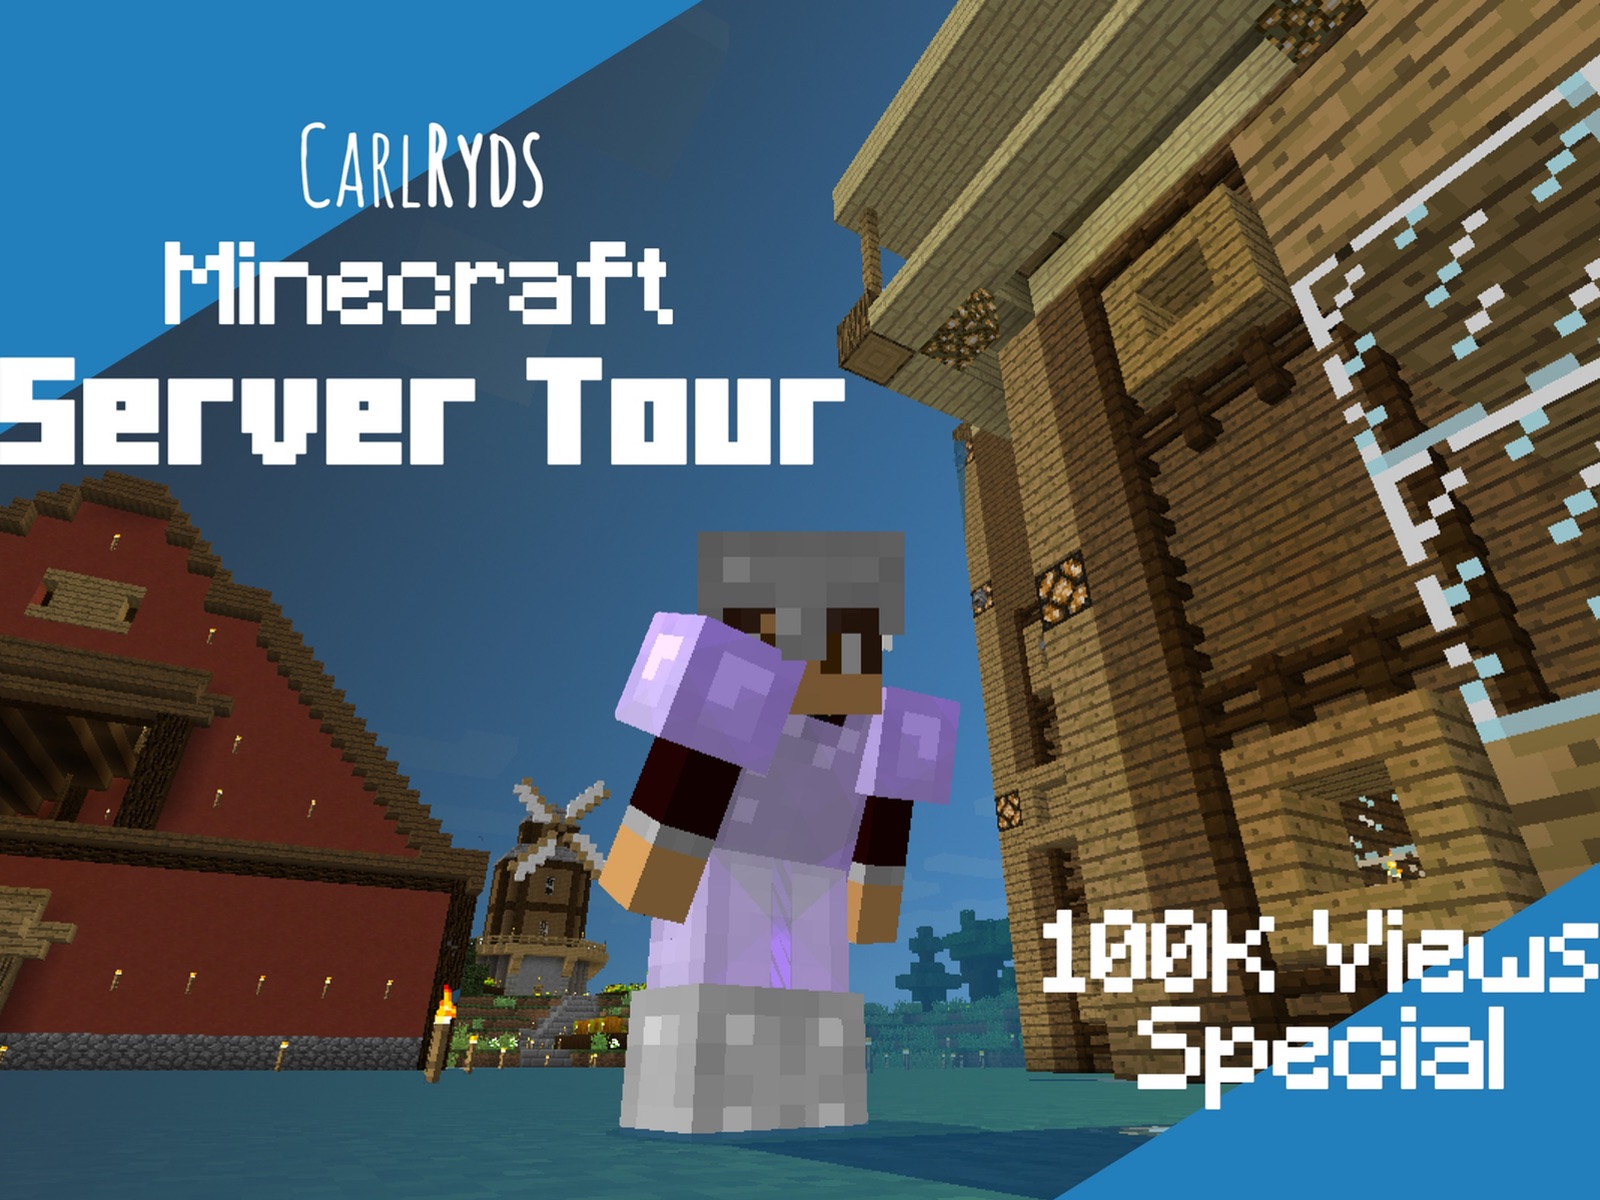 CarlRyds Minecraft Server Tour